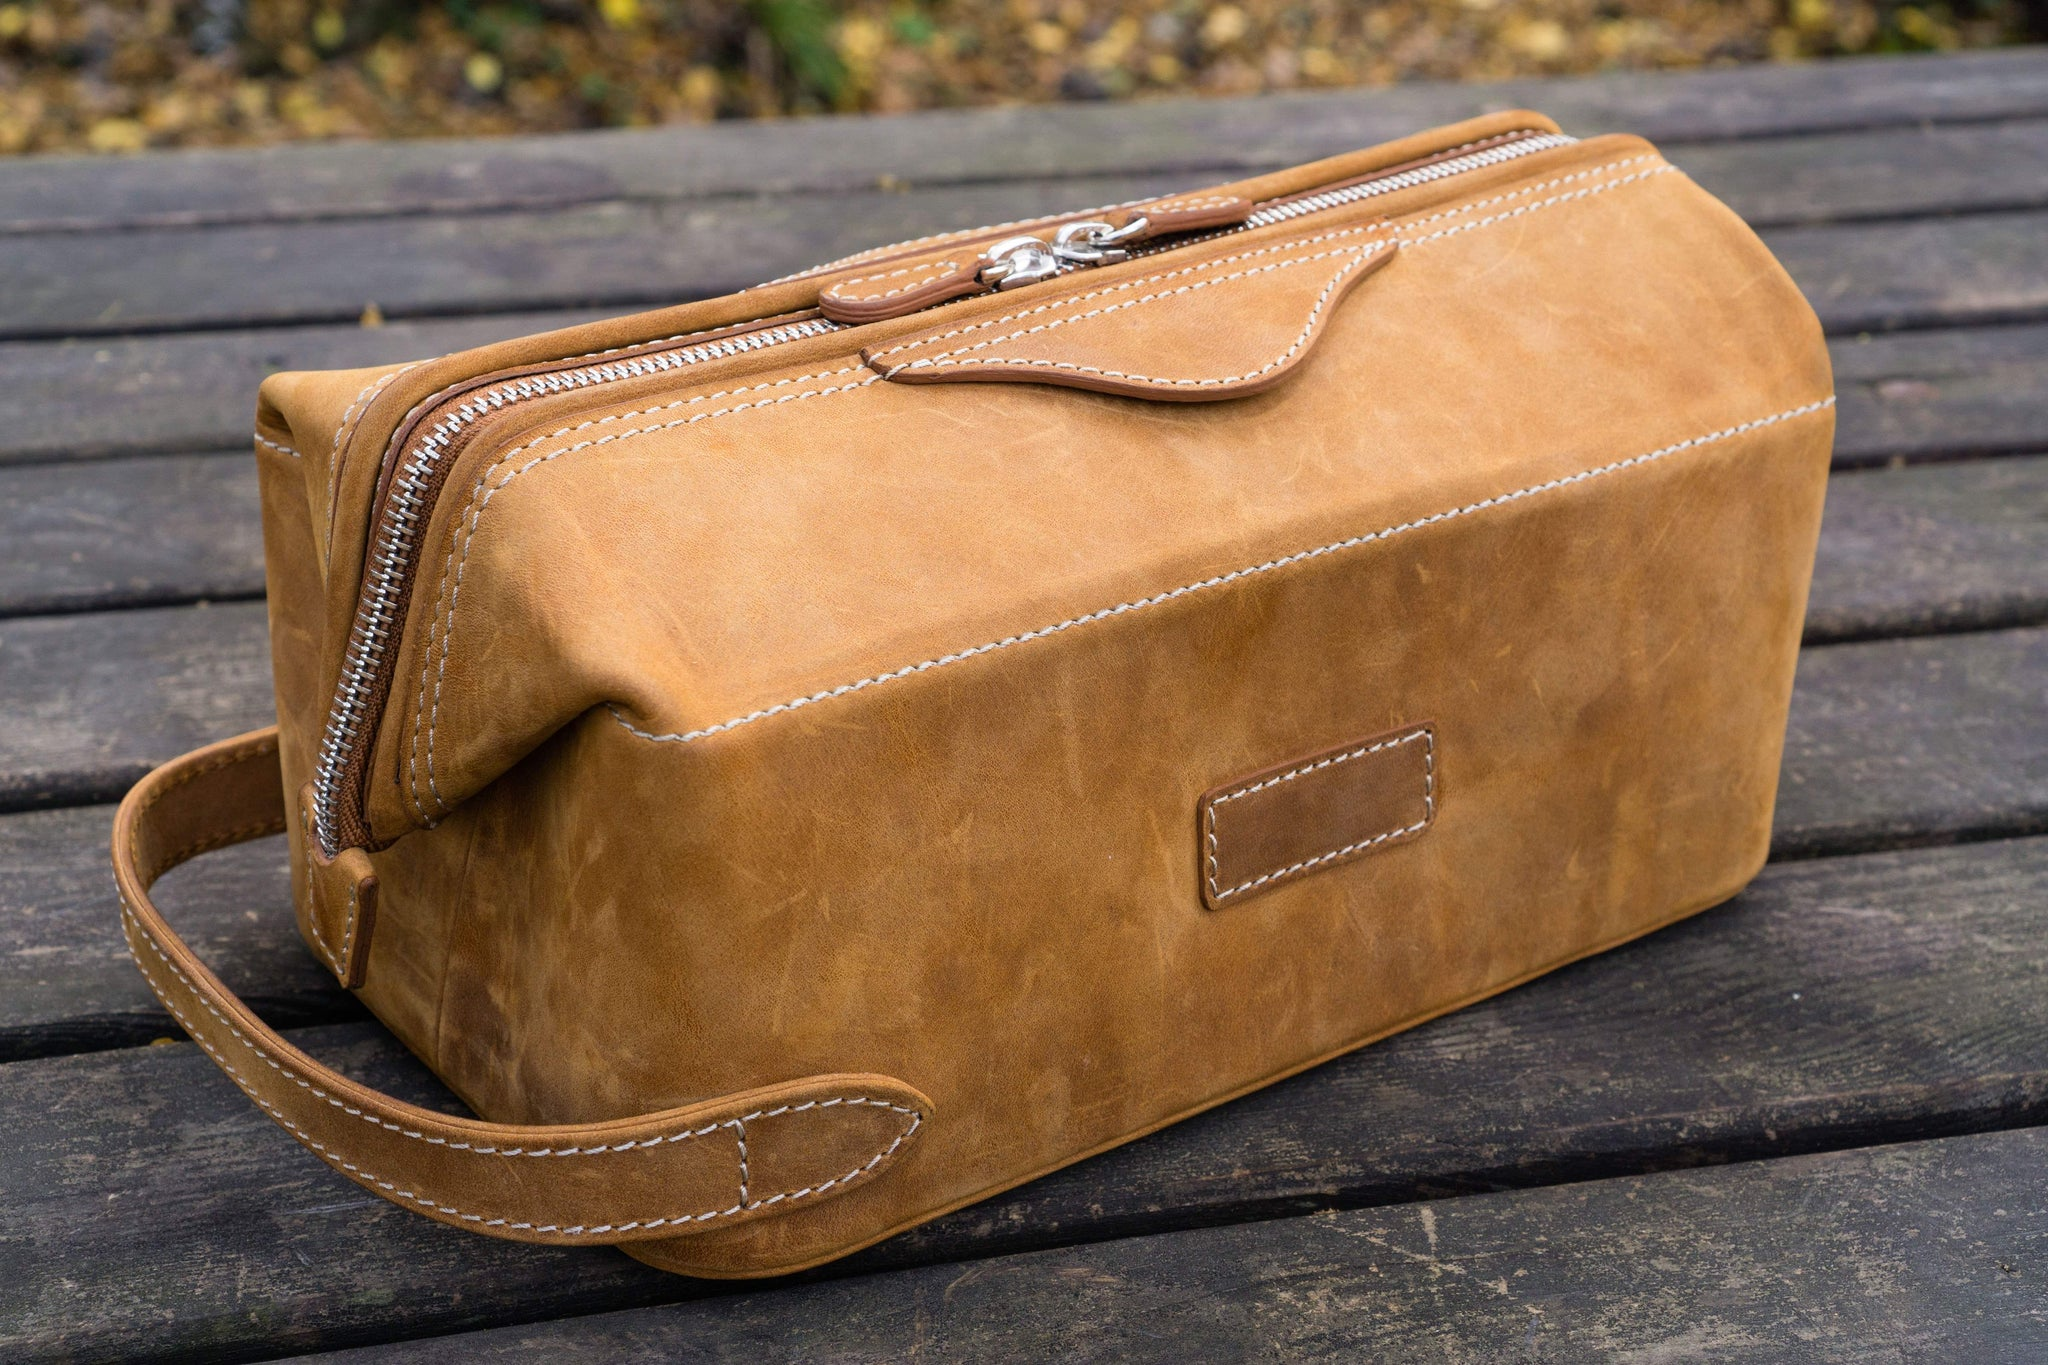 Handmade Leather Dopp Kit - Men s Toiletry Bag - Shop Galen Leather 8159dd318abf2